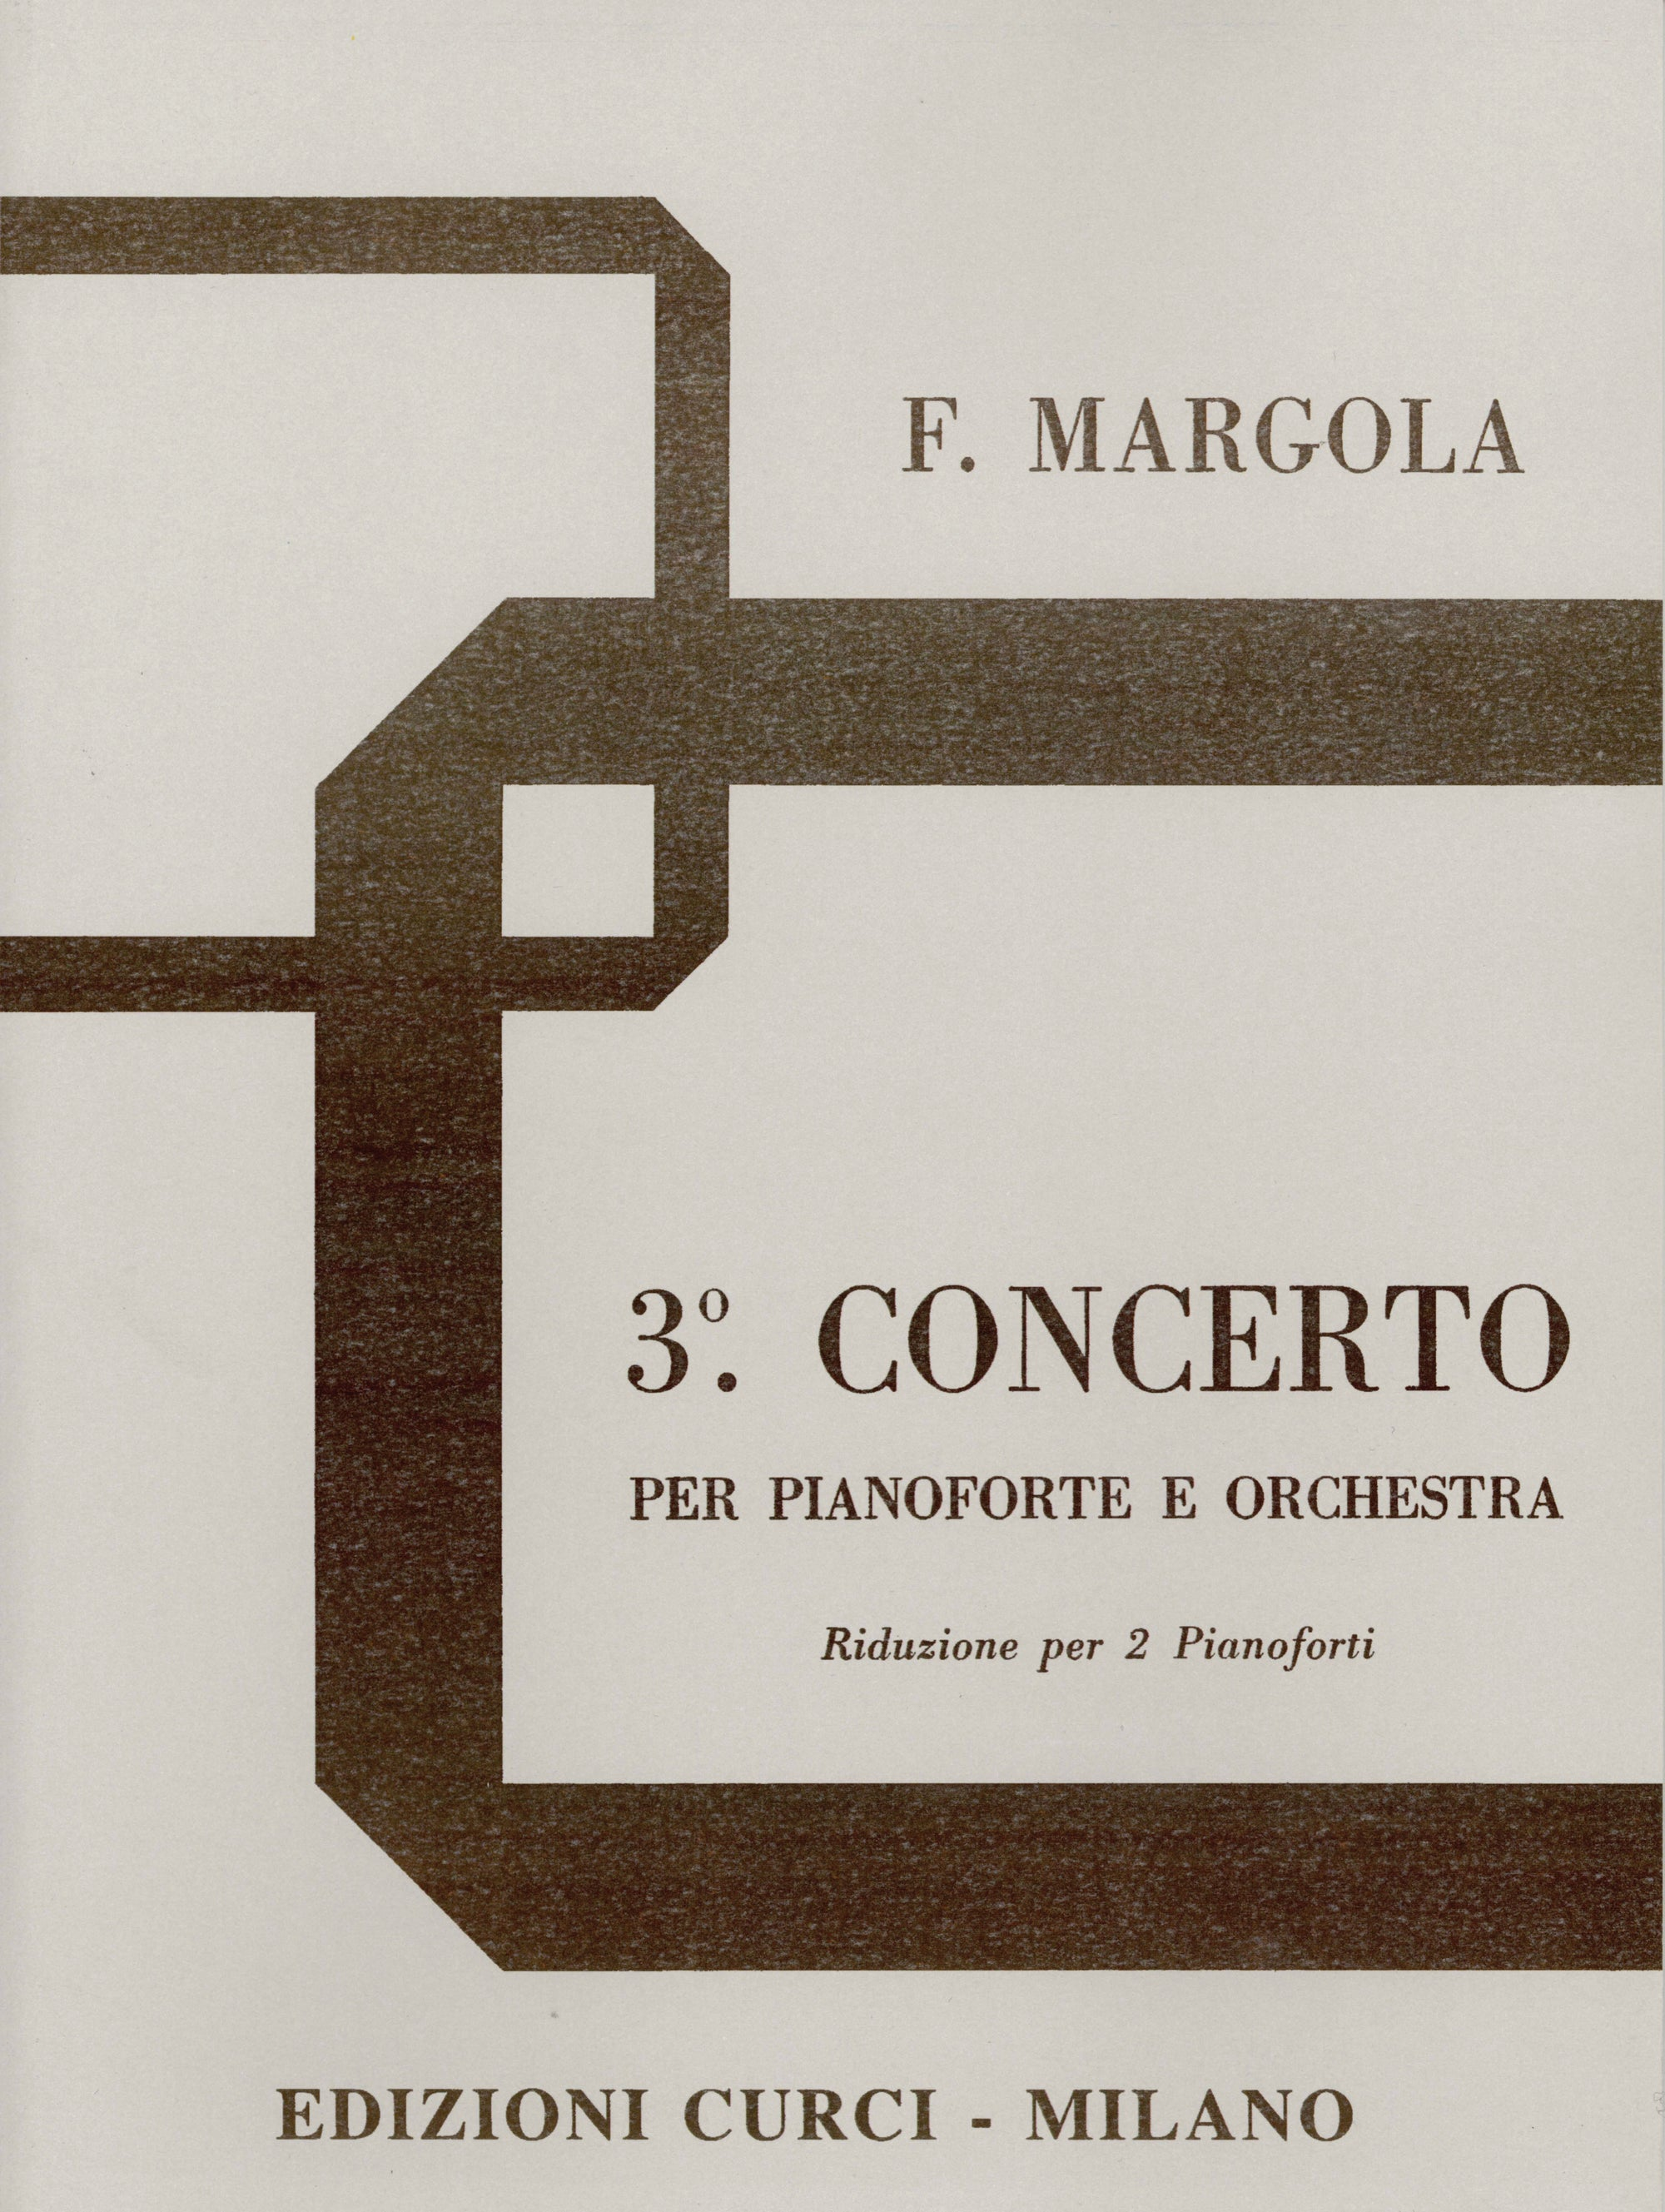 Margola: Piano Concerto No. 3